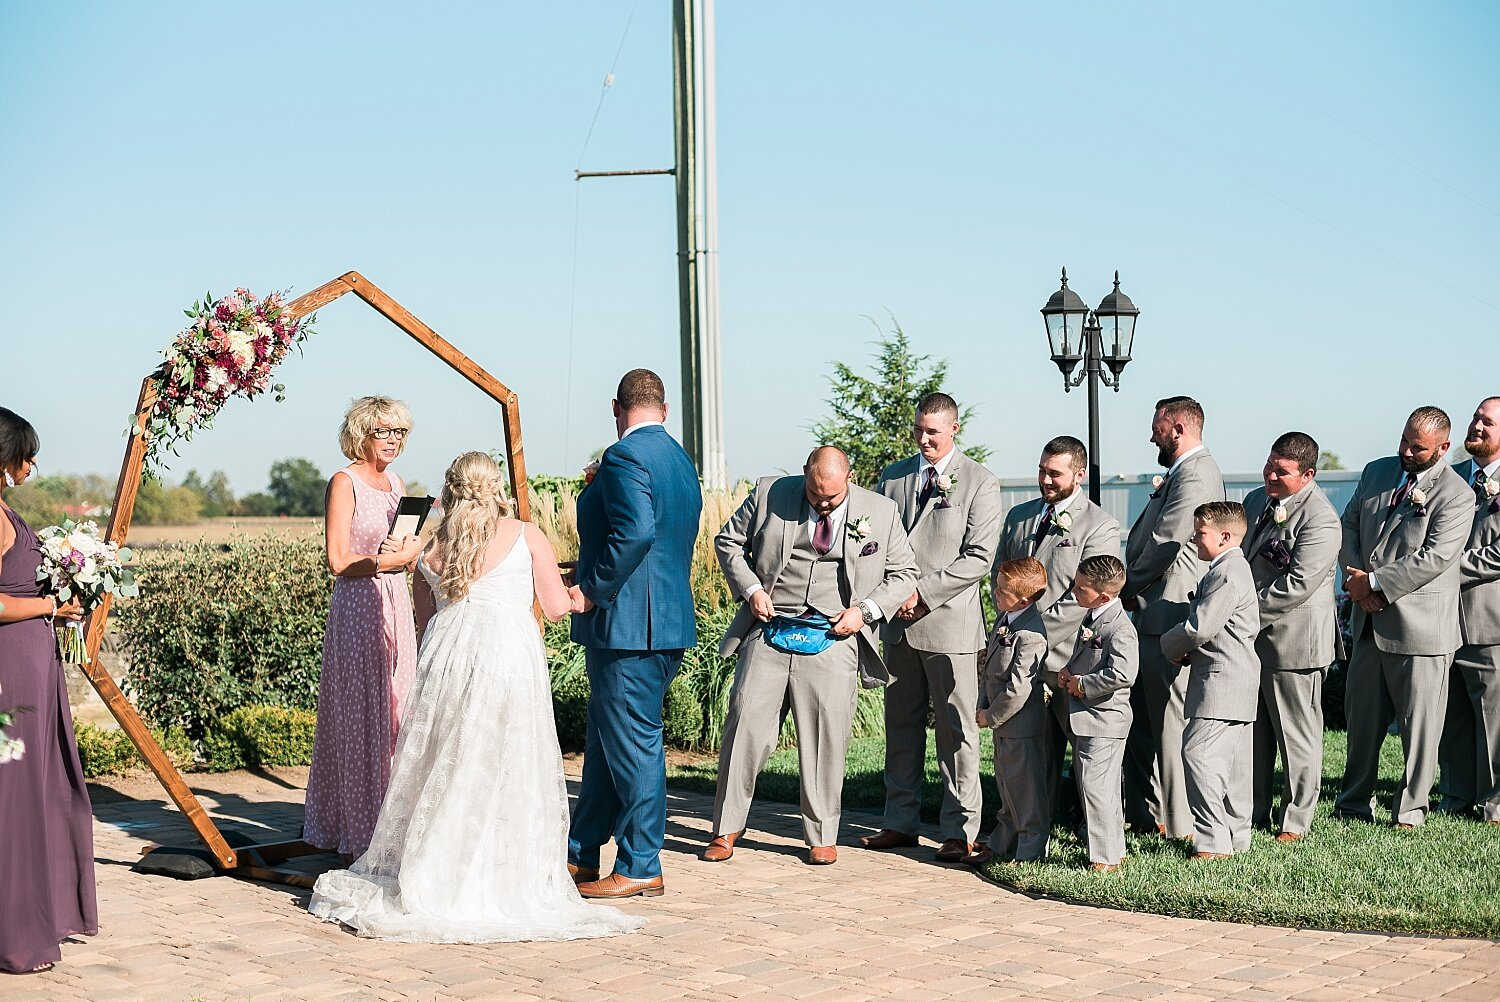 The best man made everyone laugh by carrying the rings in a fanny pack!